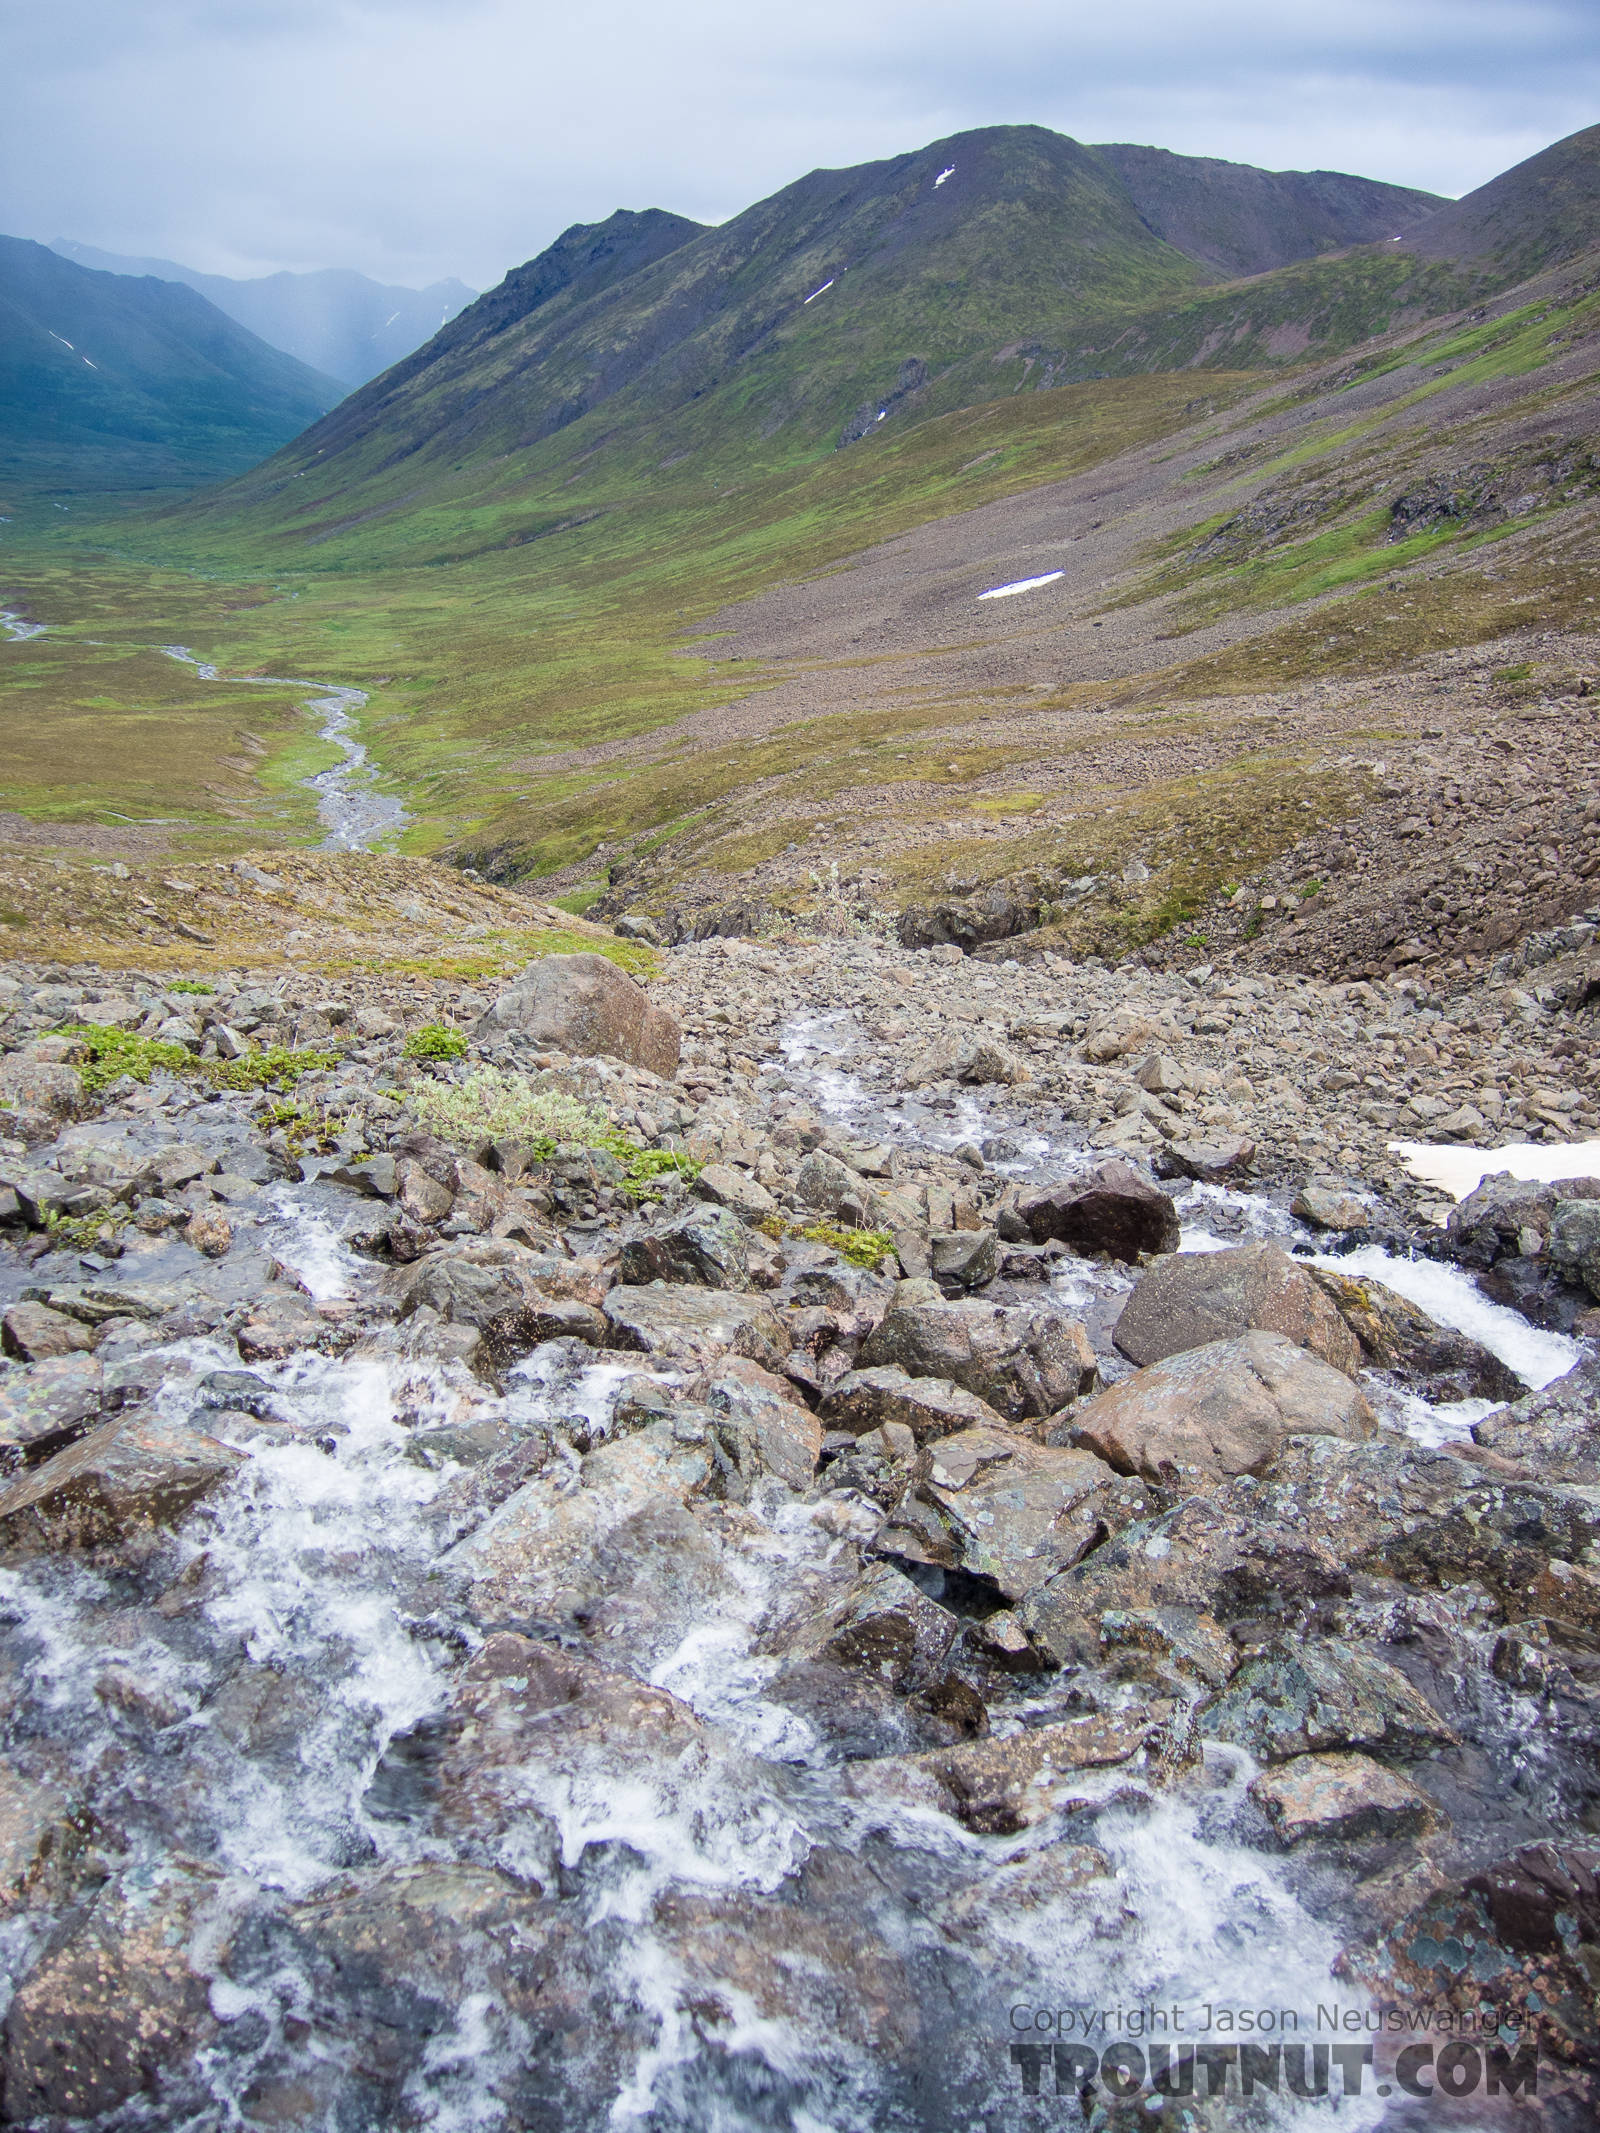 High rocks at the beginning of a little mountain stream From the South Fork of Pass Creek in Alaska.